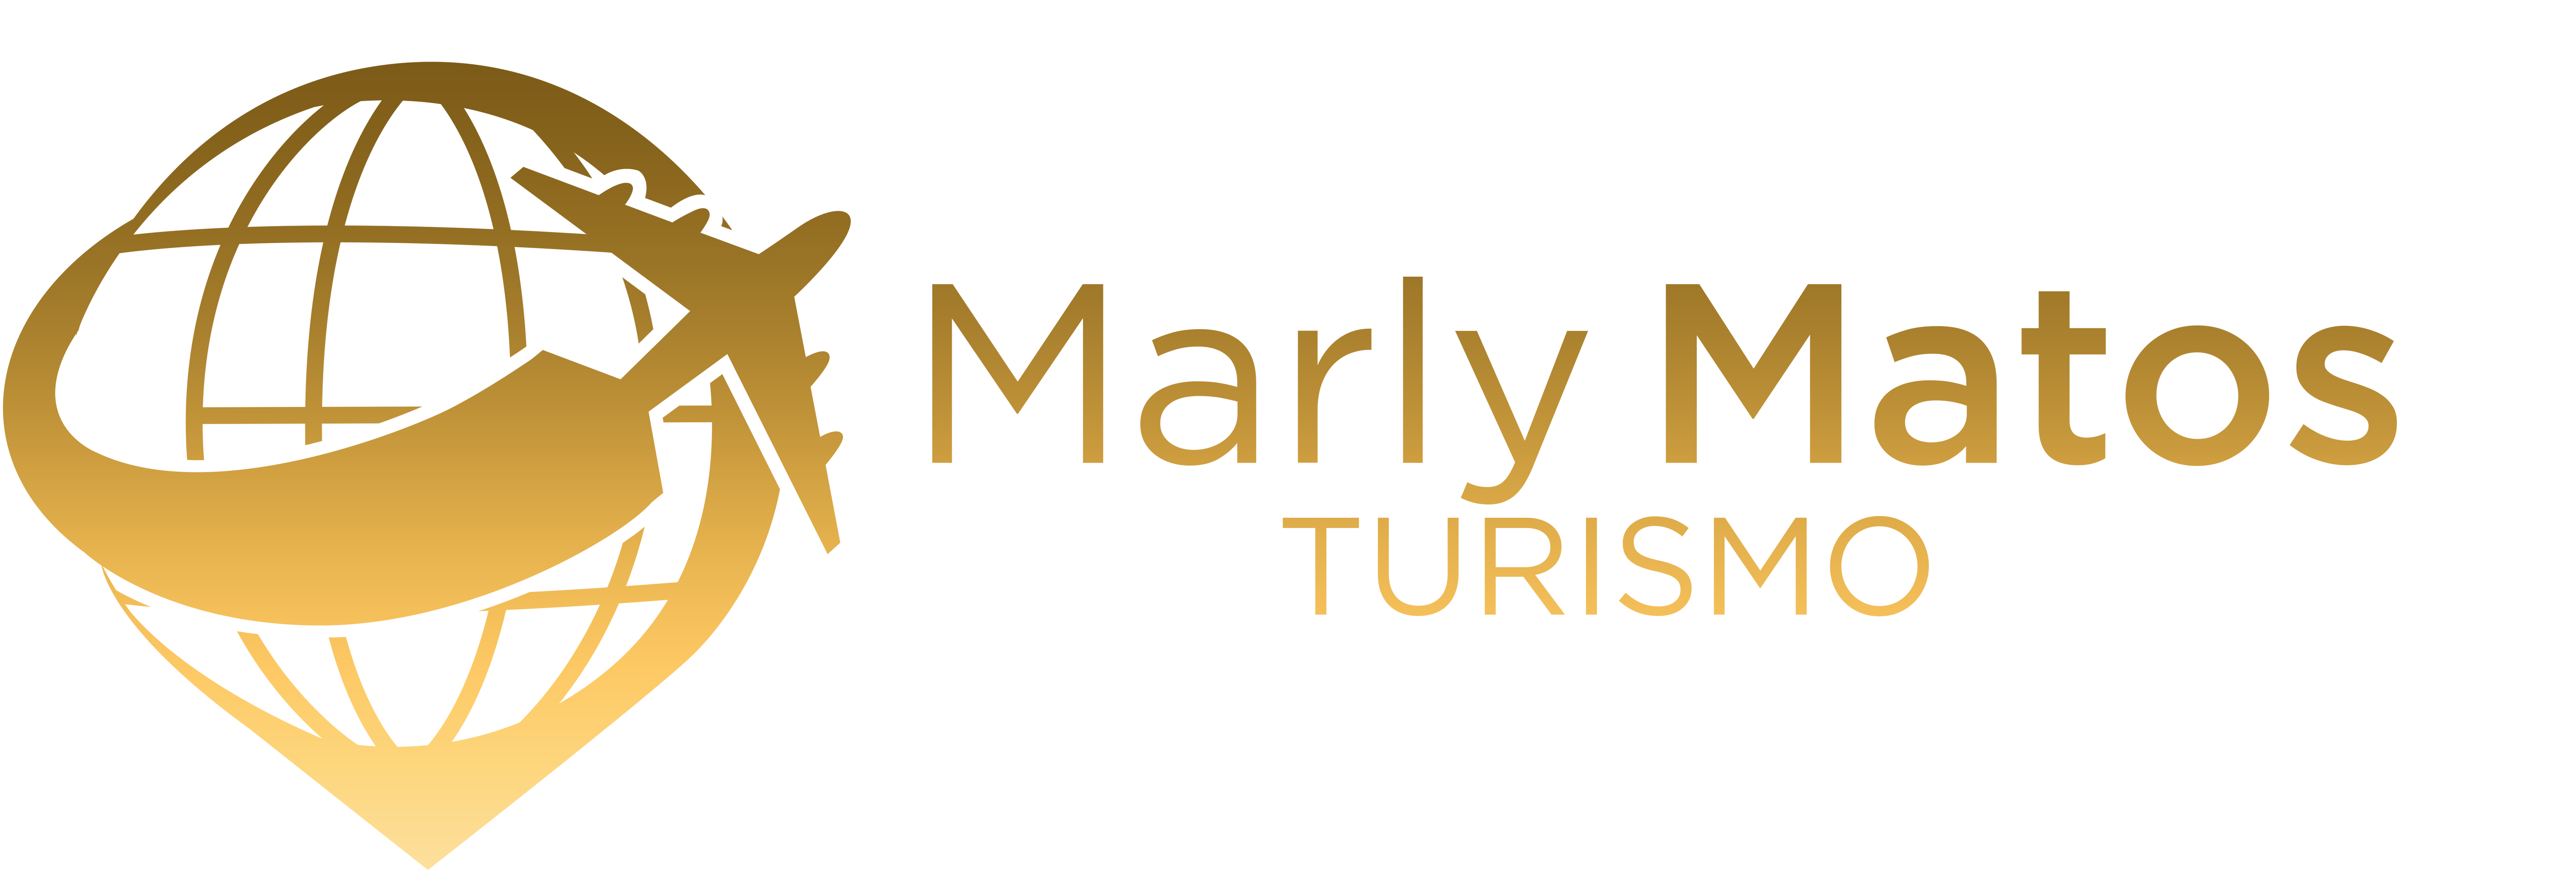 Marly Matos Turismo